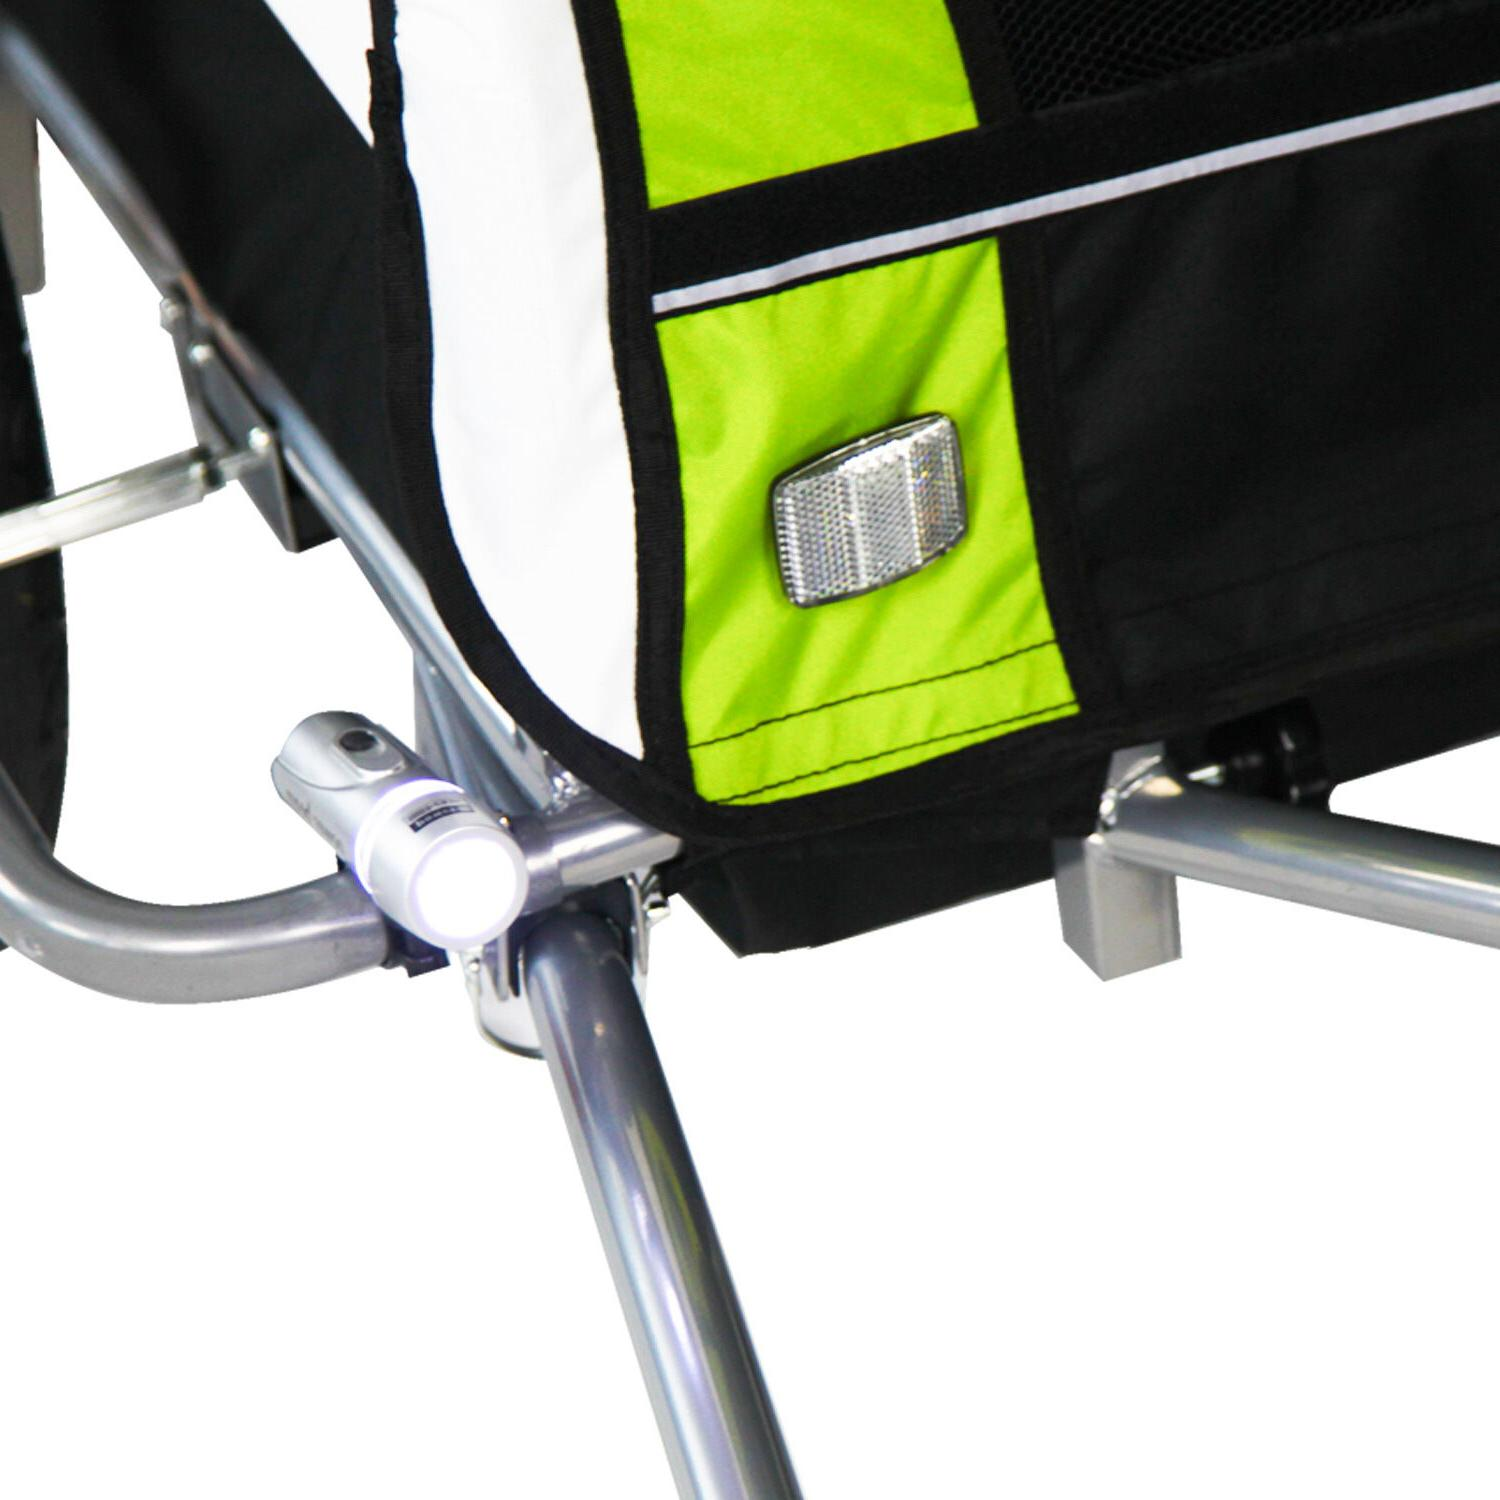 2 Pet Carrier Bike Cycling Trailer Green